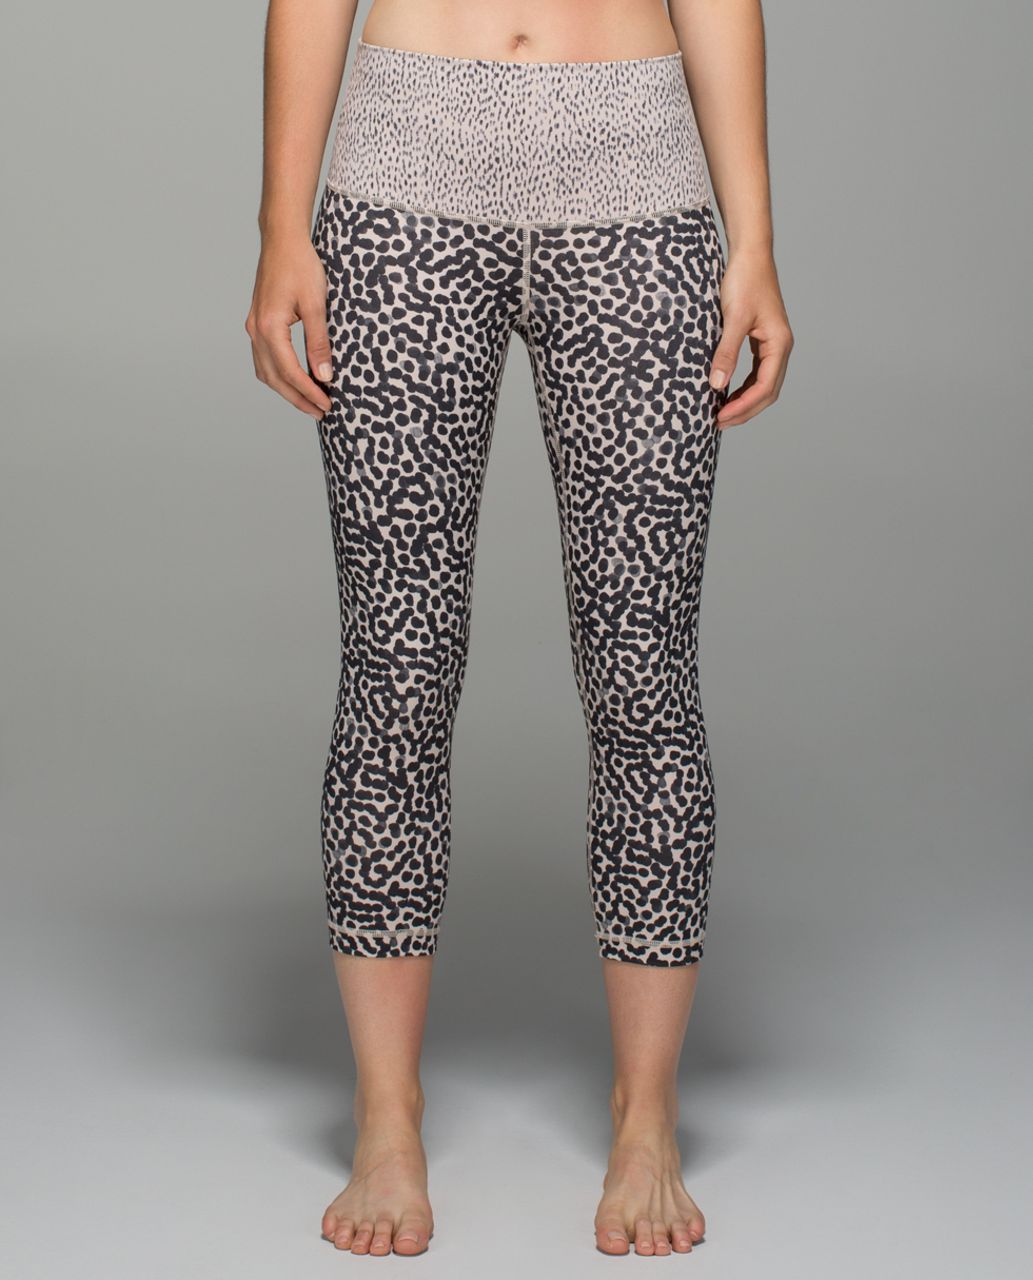 Lululemon Wunder Under Crop II *Full-On Luon (Roll Down) - Ace Spot Grain Black / Dottie Dash Grain Black